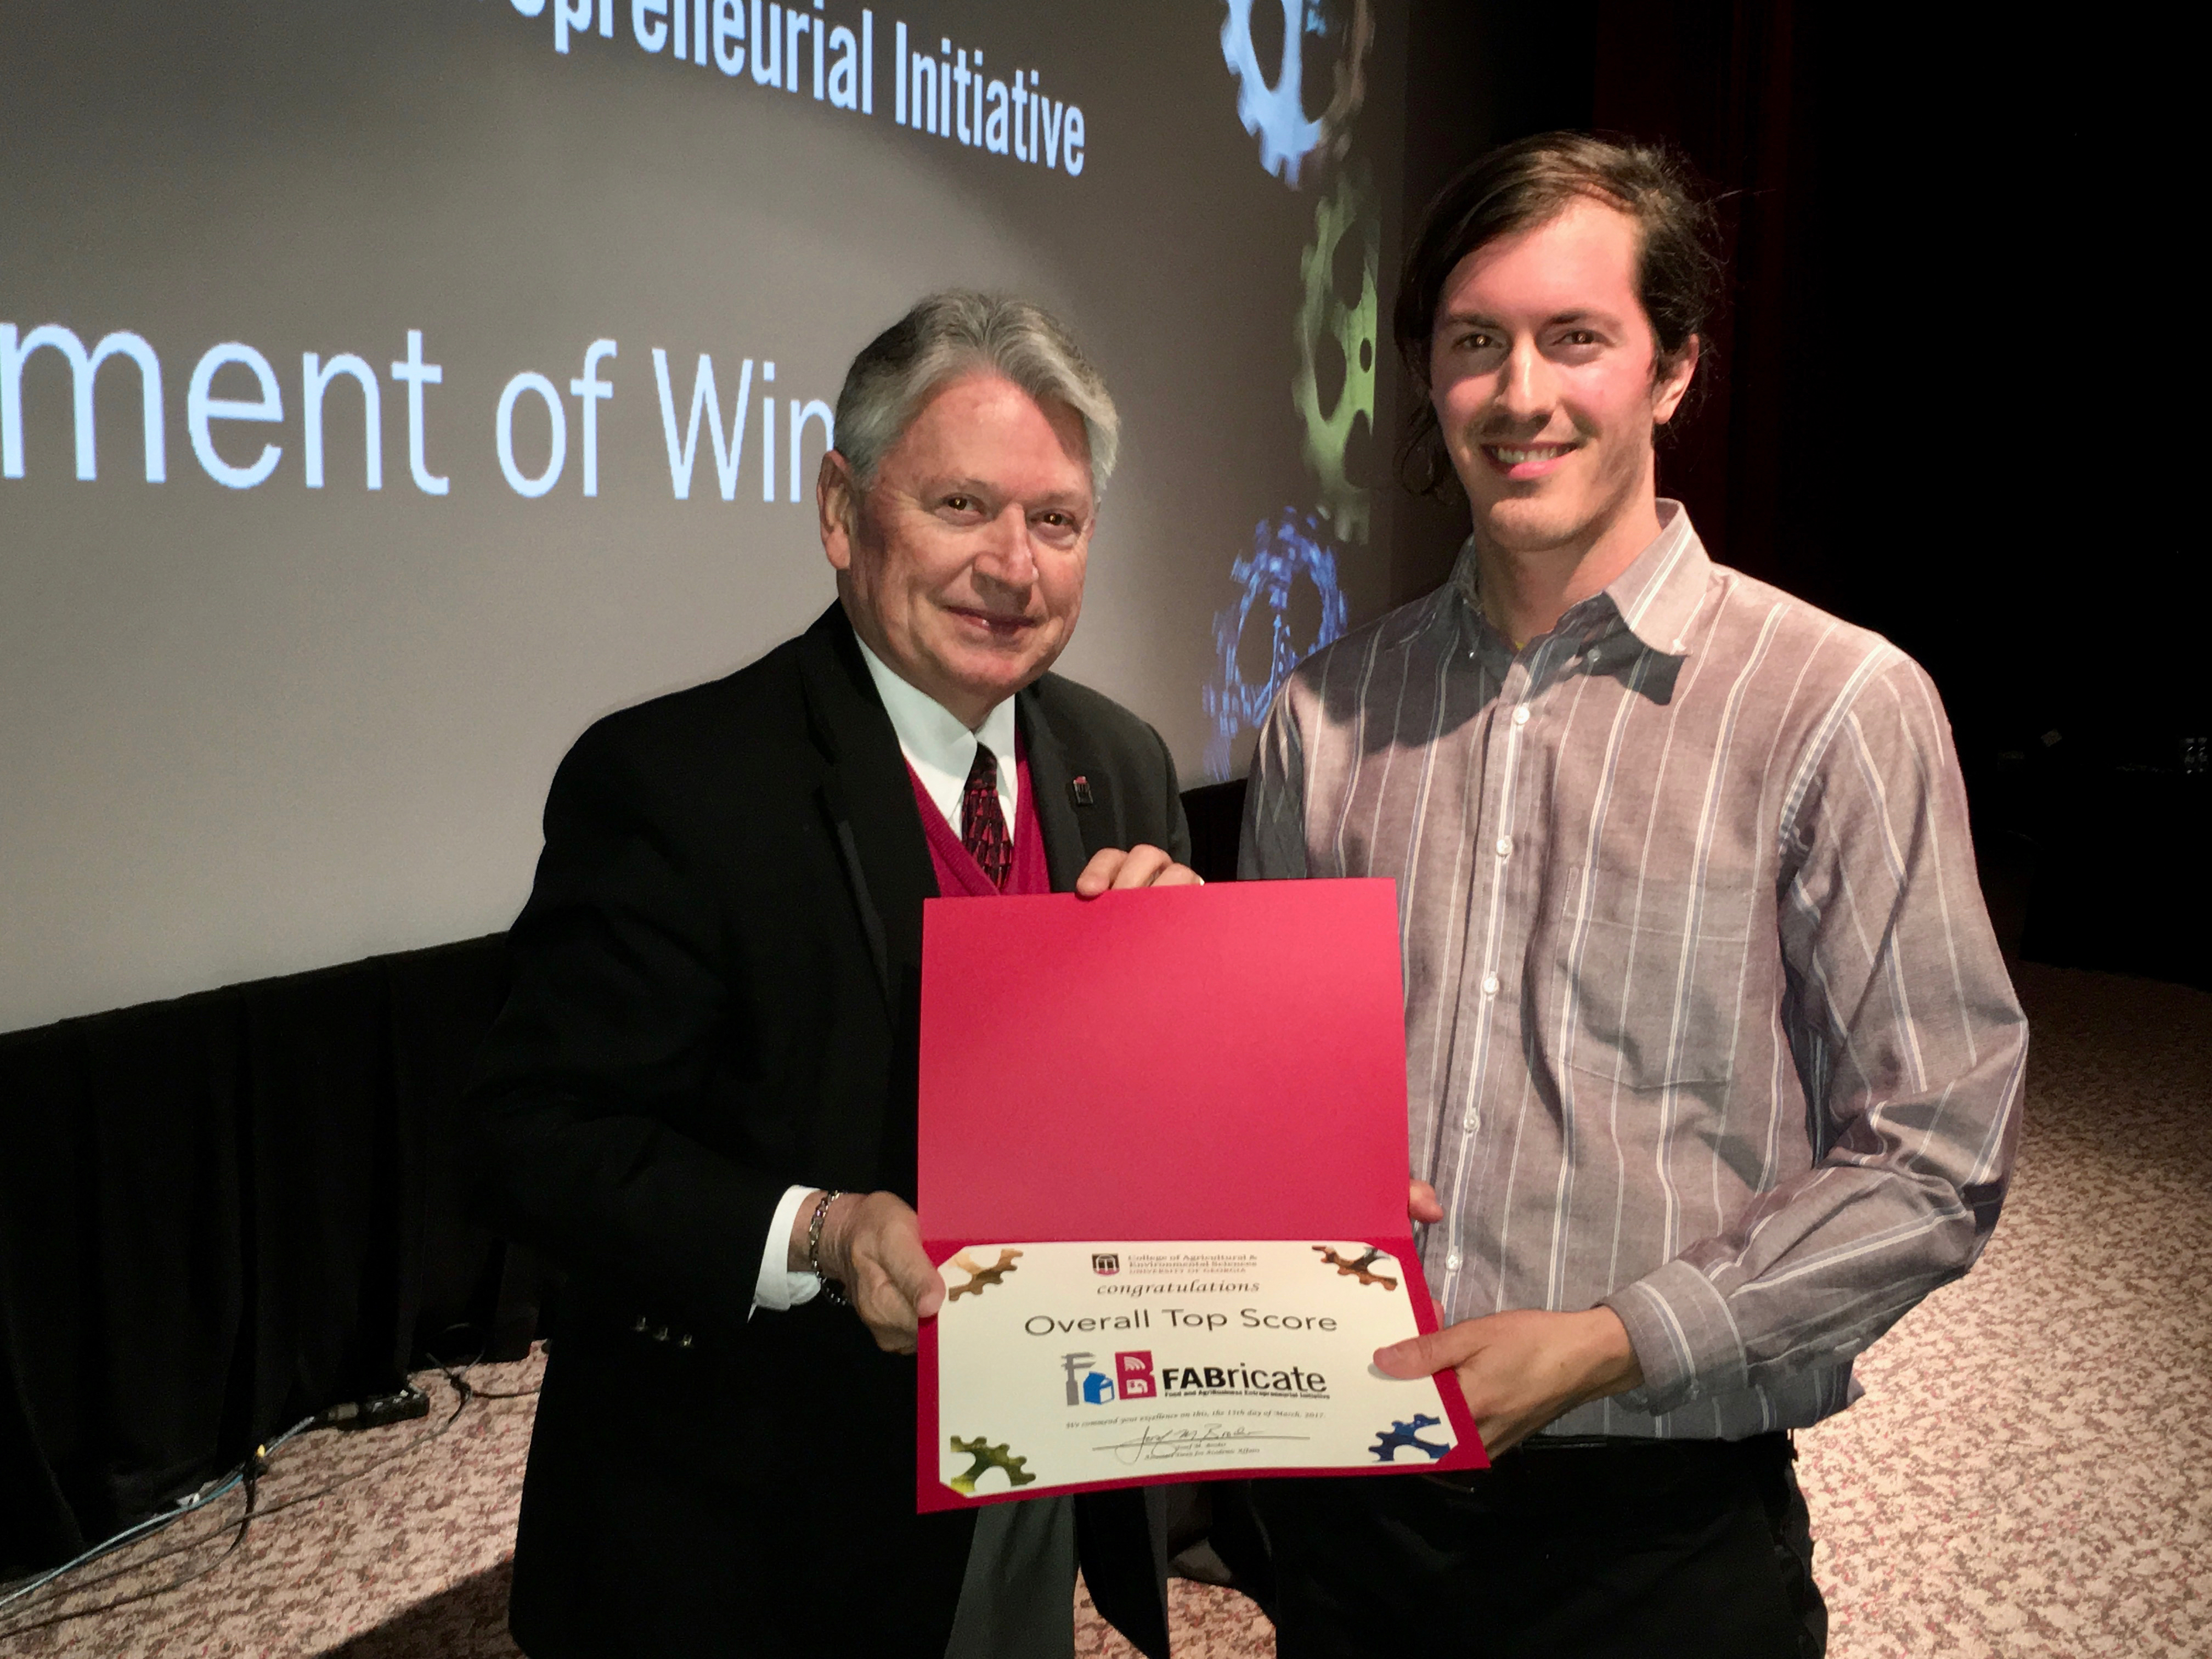 UGA College of Agricultural and Environmental Sciences Associate Dean for Academic Affairs Joe Broder congratulates fourth-year horticulture student Jesse Lafian, whose smart irrigation business, Reservoir, won the grand prize in CAES's inaugural FABricate entrepreneurship competition.